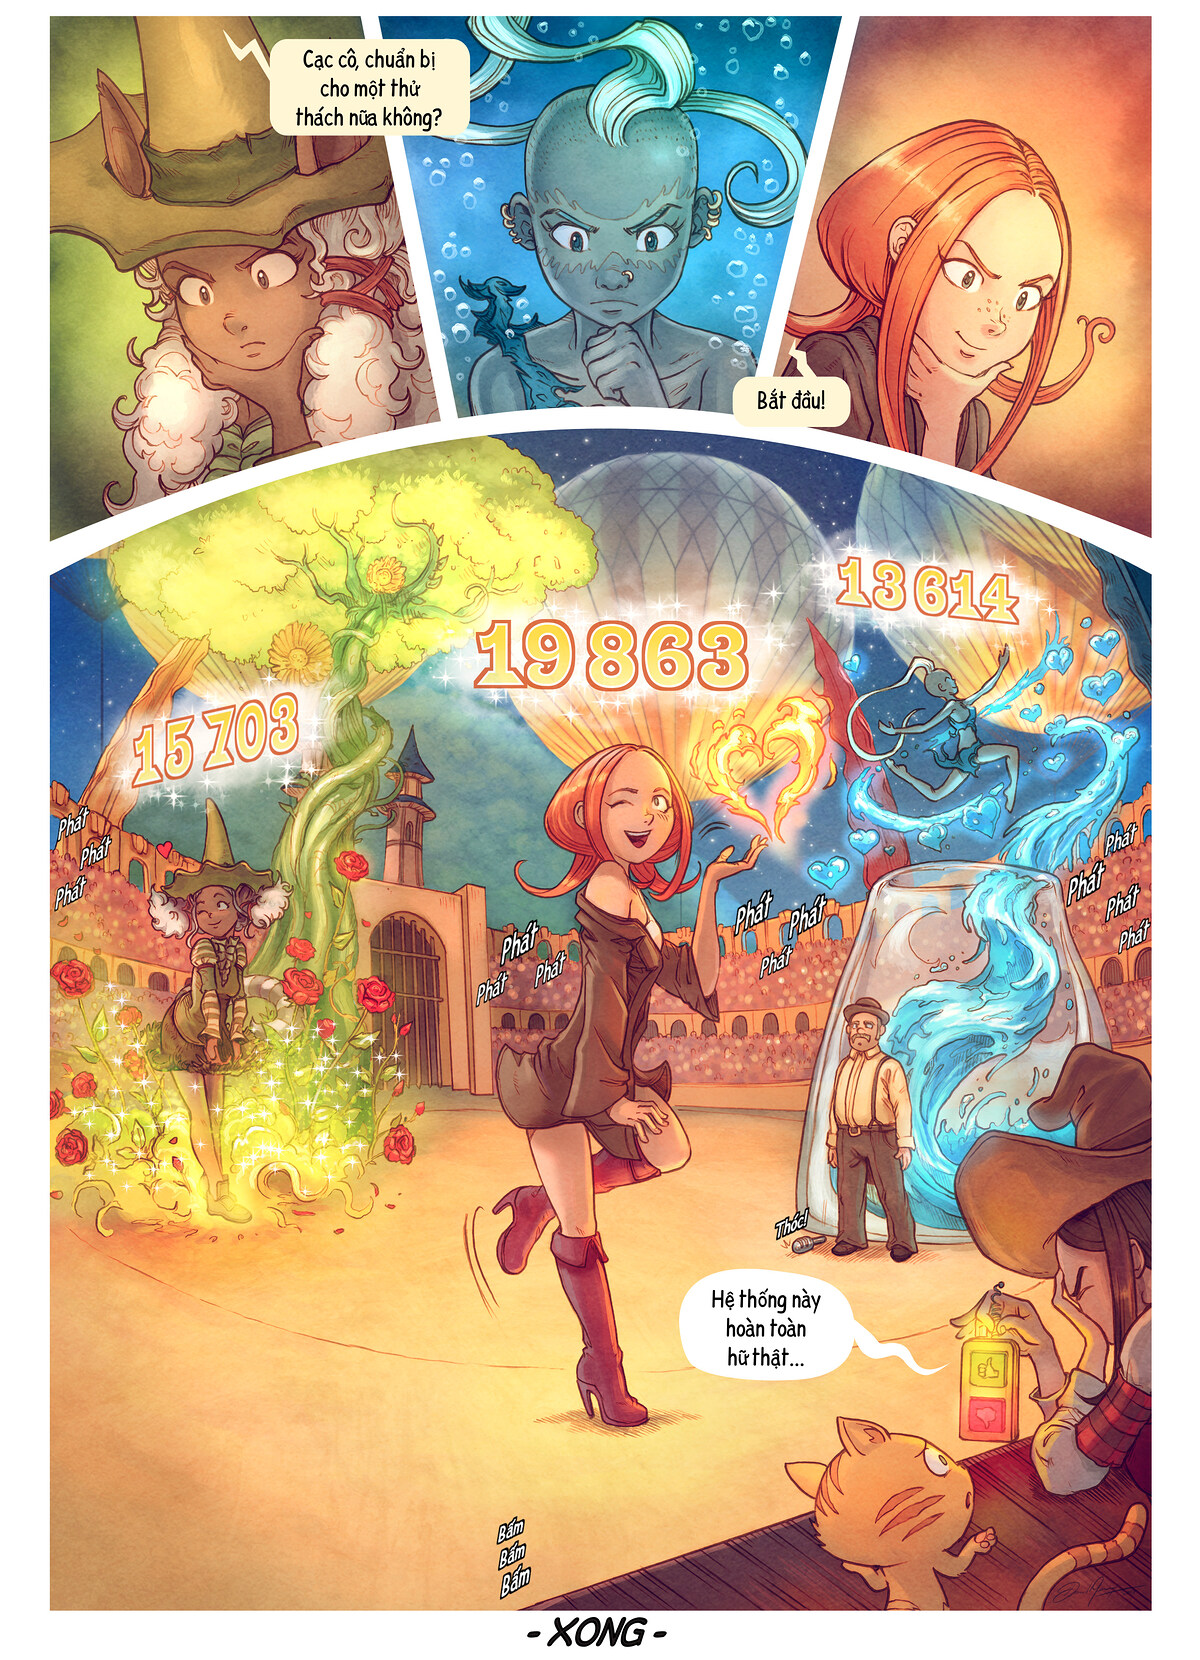 A webcomic page of Pepper&Carrot, Tập 22 [vi], trang 10